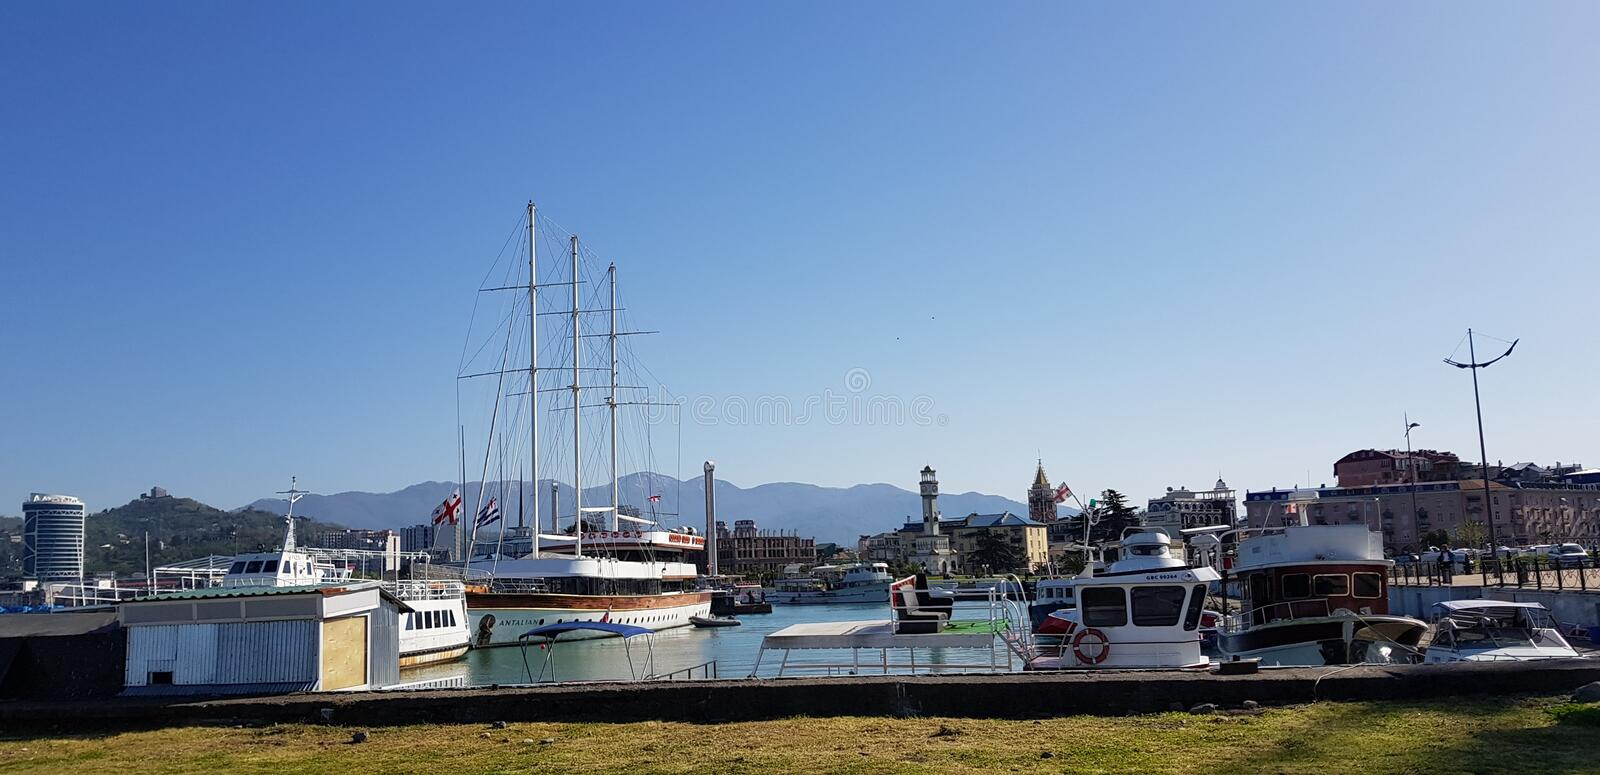 Yachts on the quay in the port. Yachts and other vessels on the quay of Batumi port in anticipation of exit to the Black Sea royalty free stock image